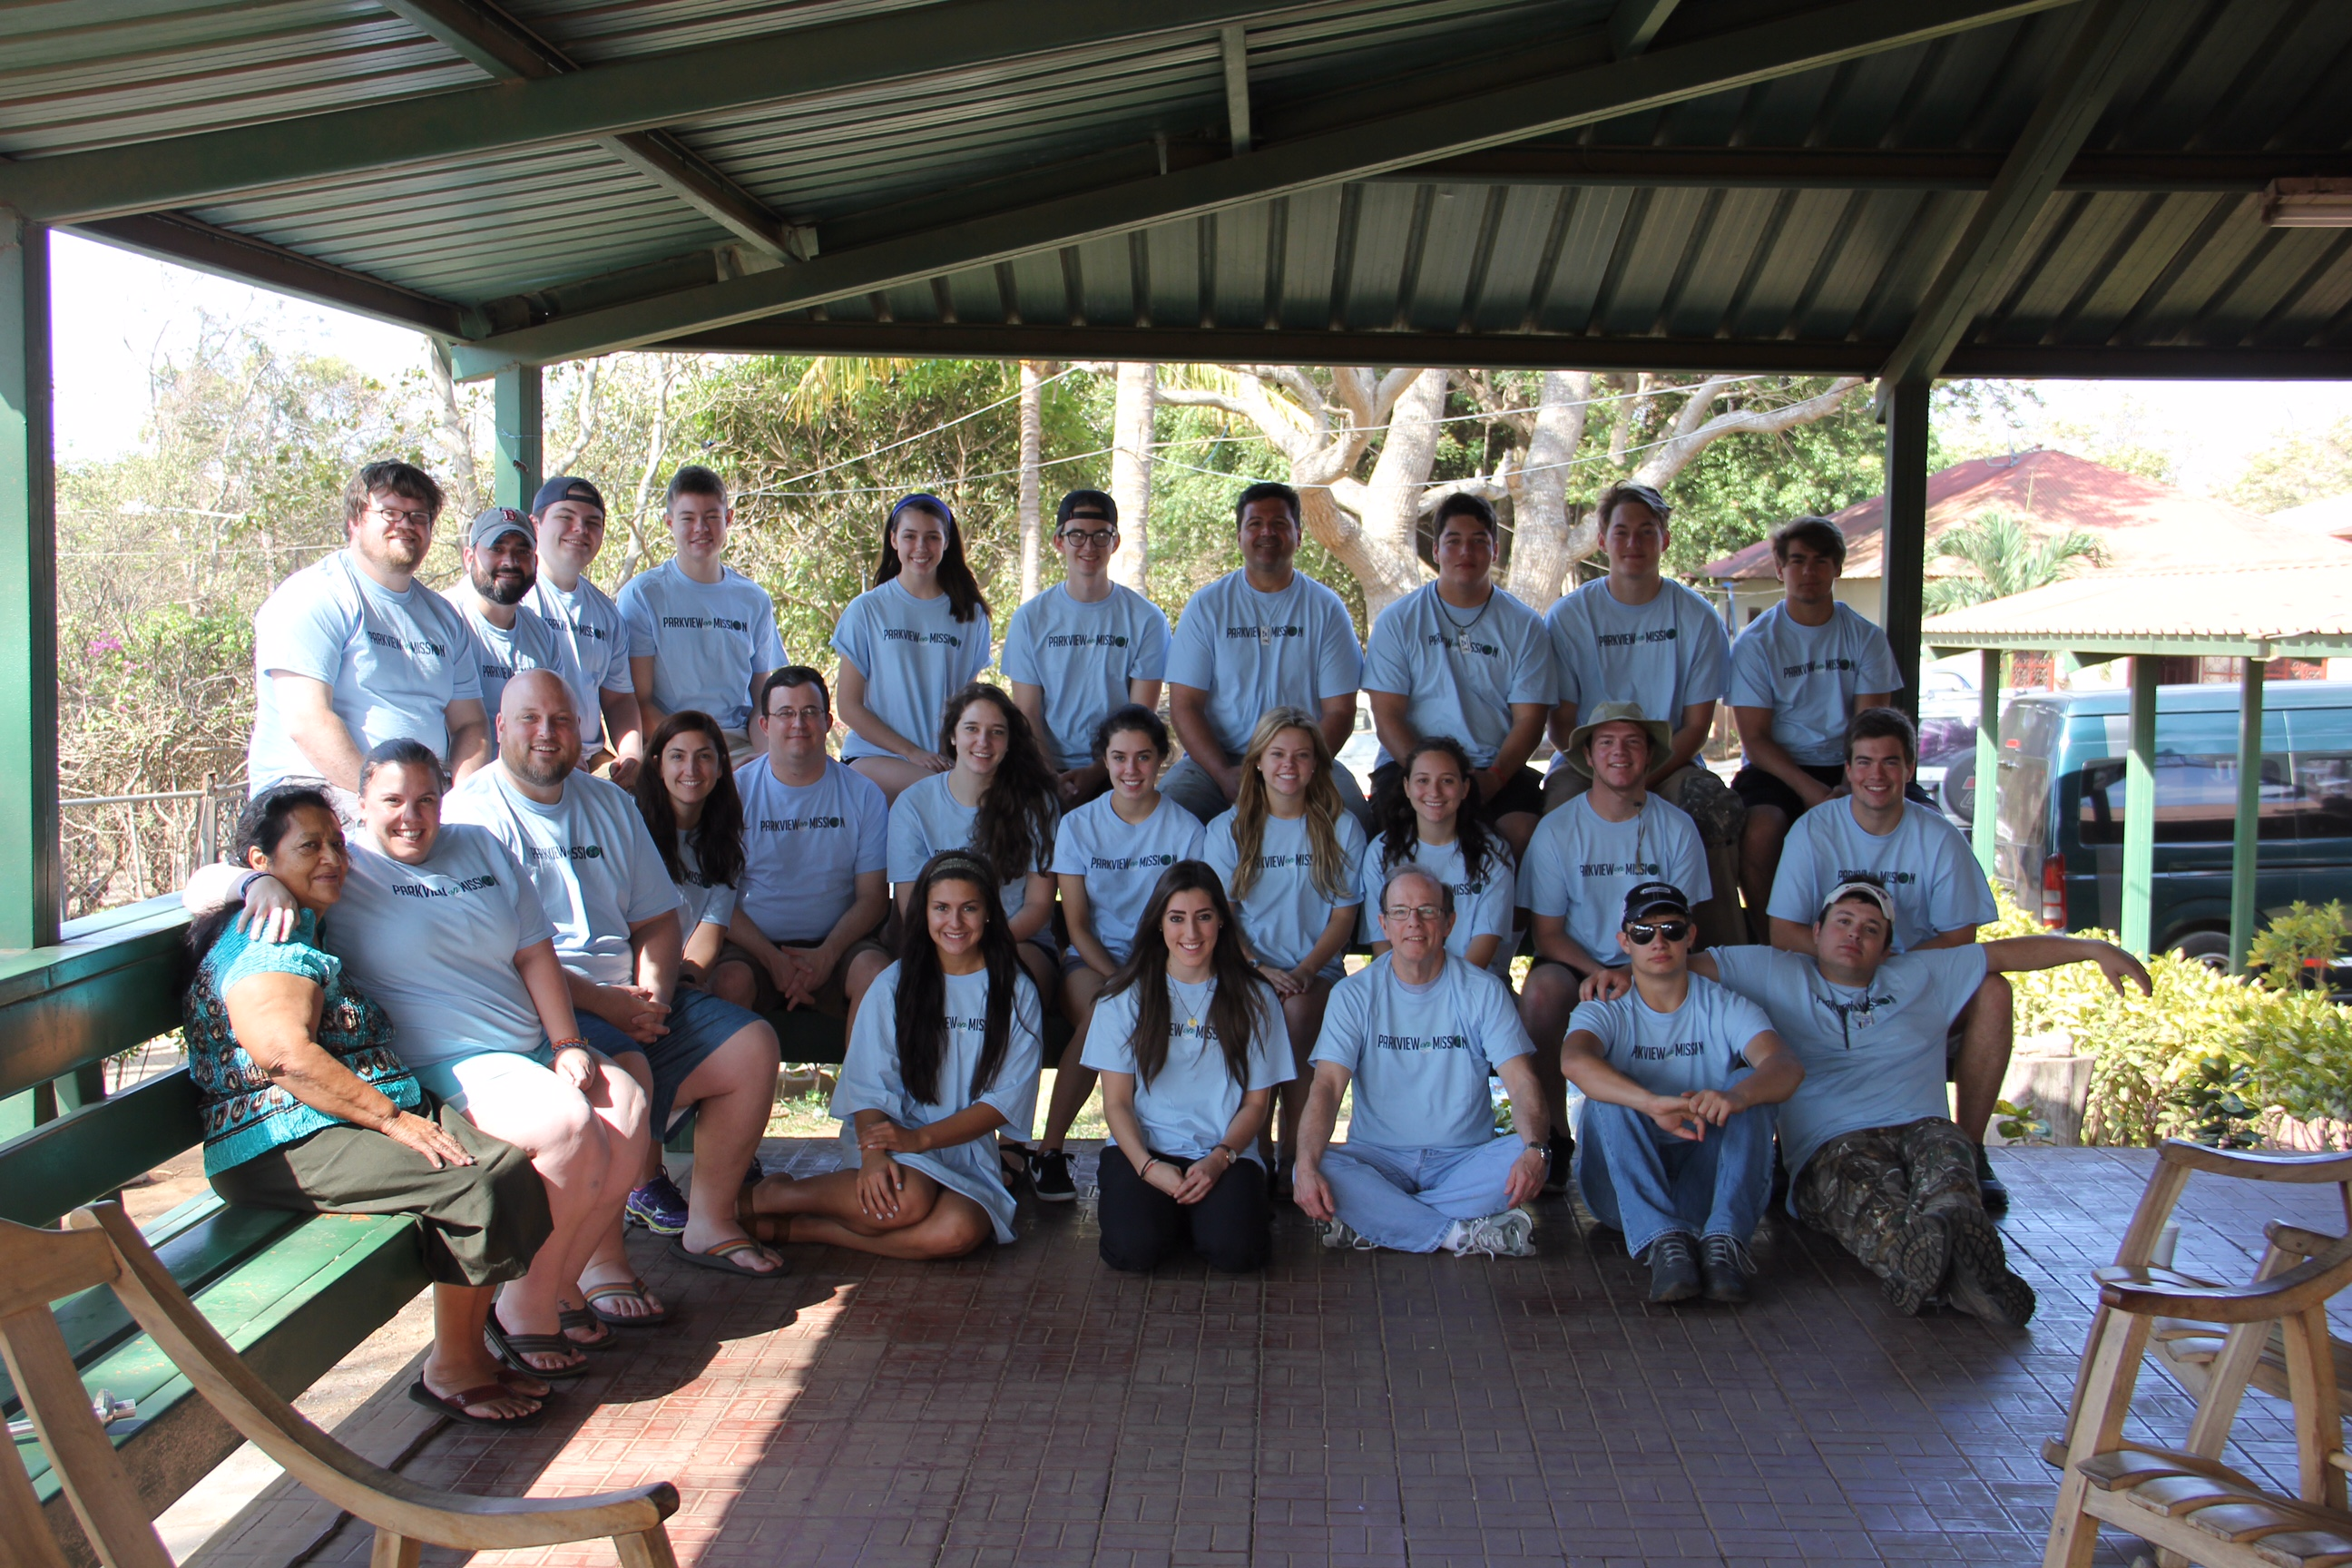 Pastor Rich Mayfield led a group of 25 students and adults to Nicaragua in March.